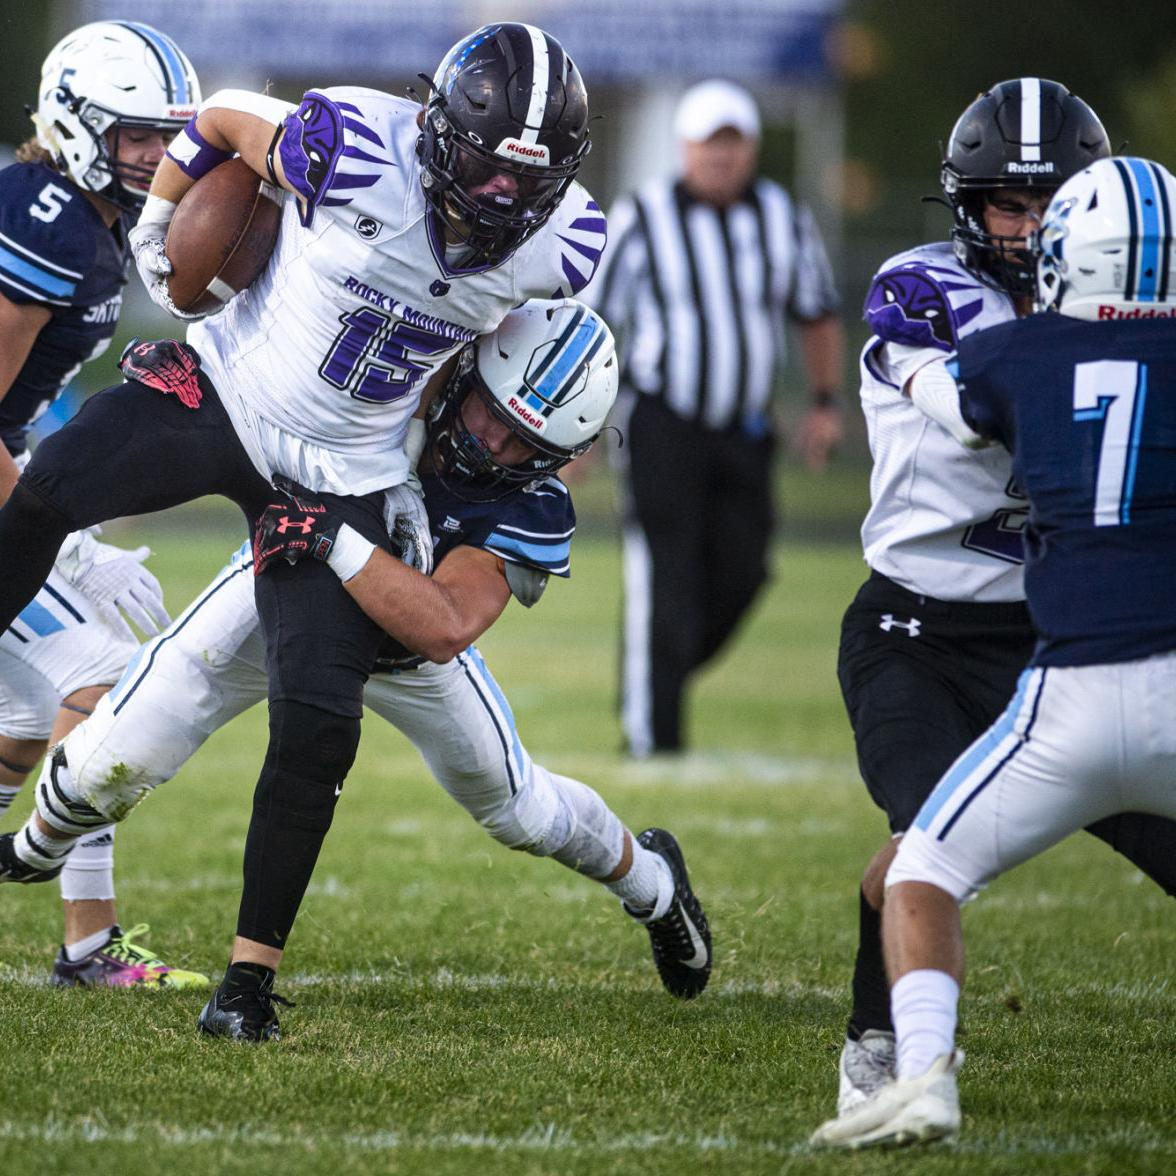 The Grizzlies' offensive line powers past Skyview